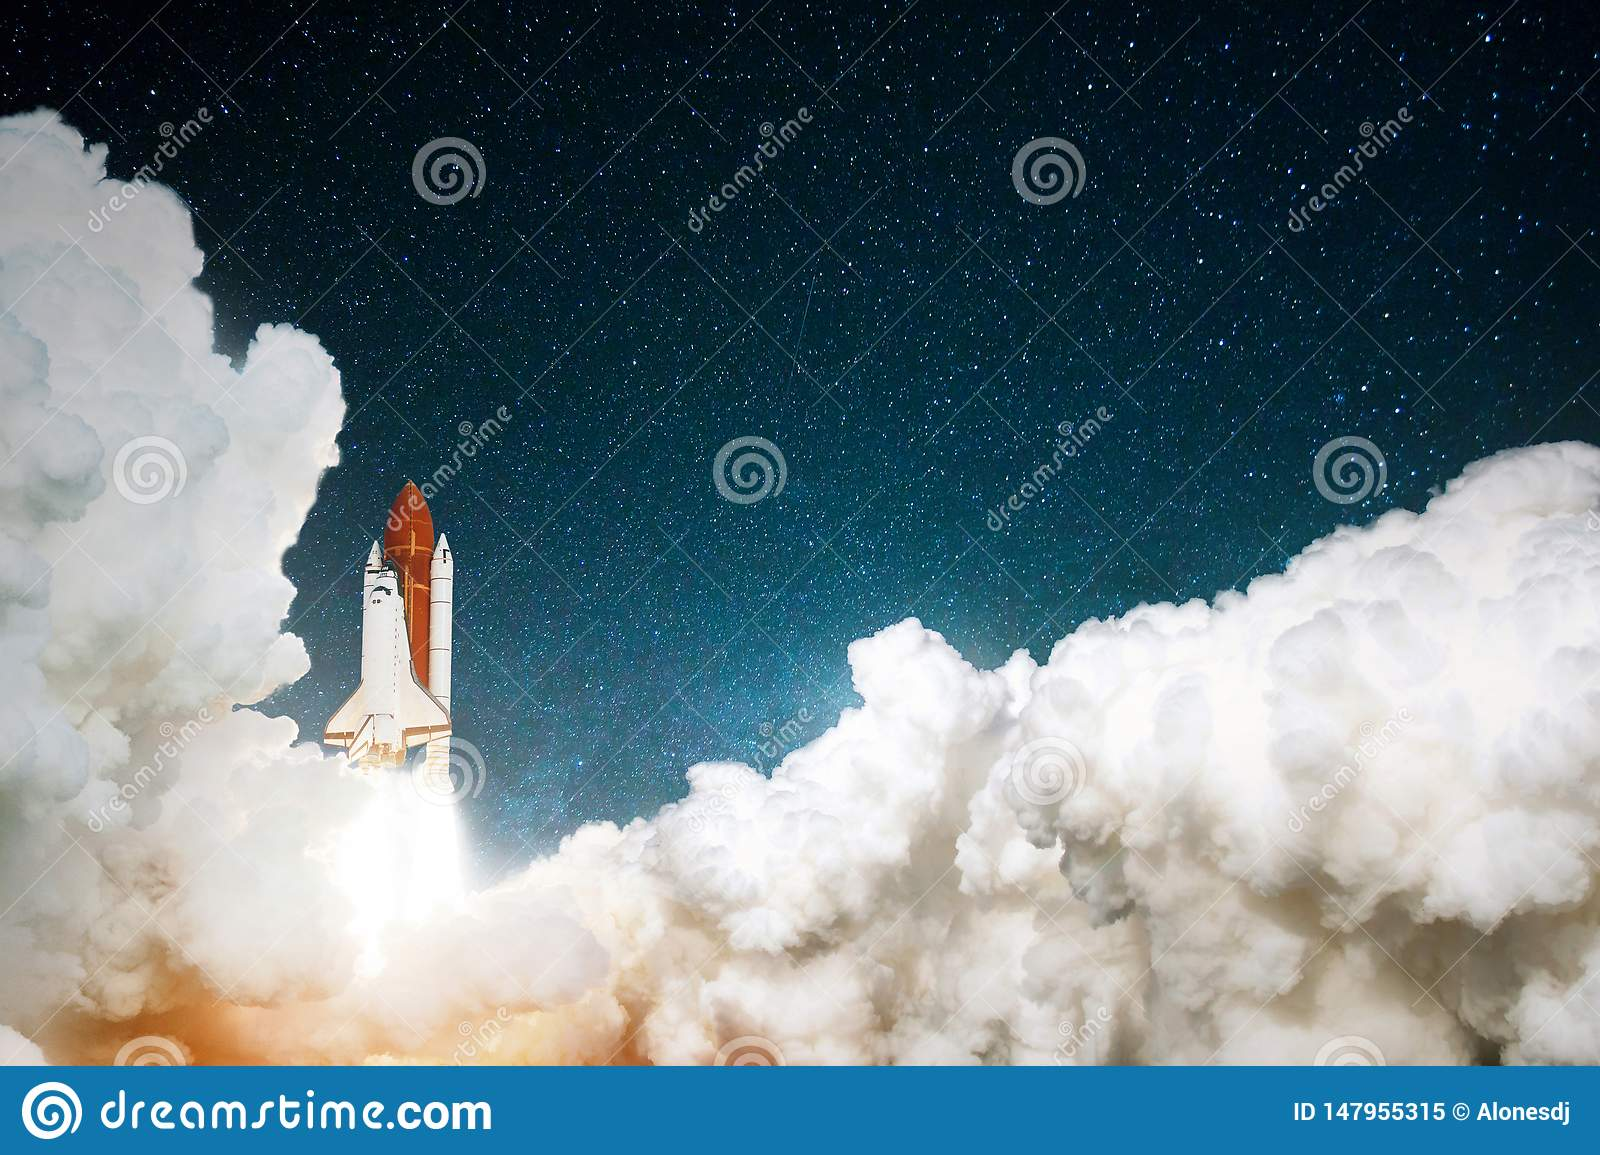 Rocket takes off in the starry sky. Spaceship begins the mission. Travel to mars concept. Space shuttle taking off on a mission.